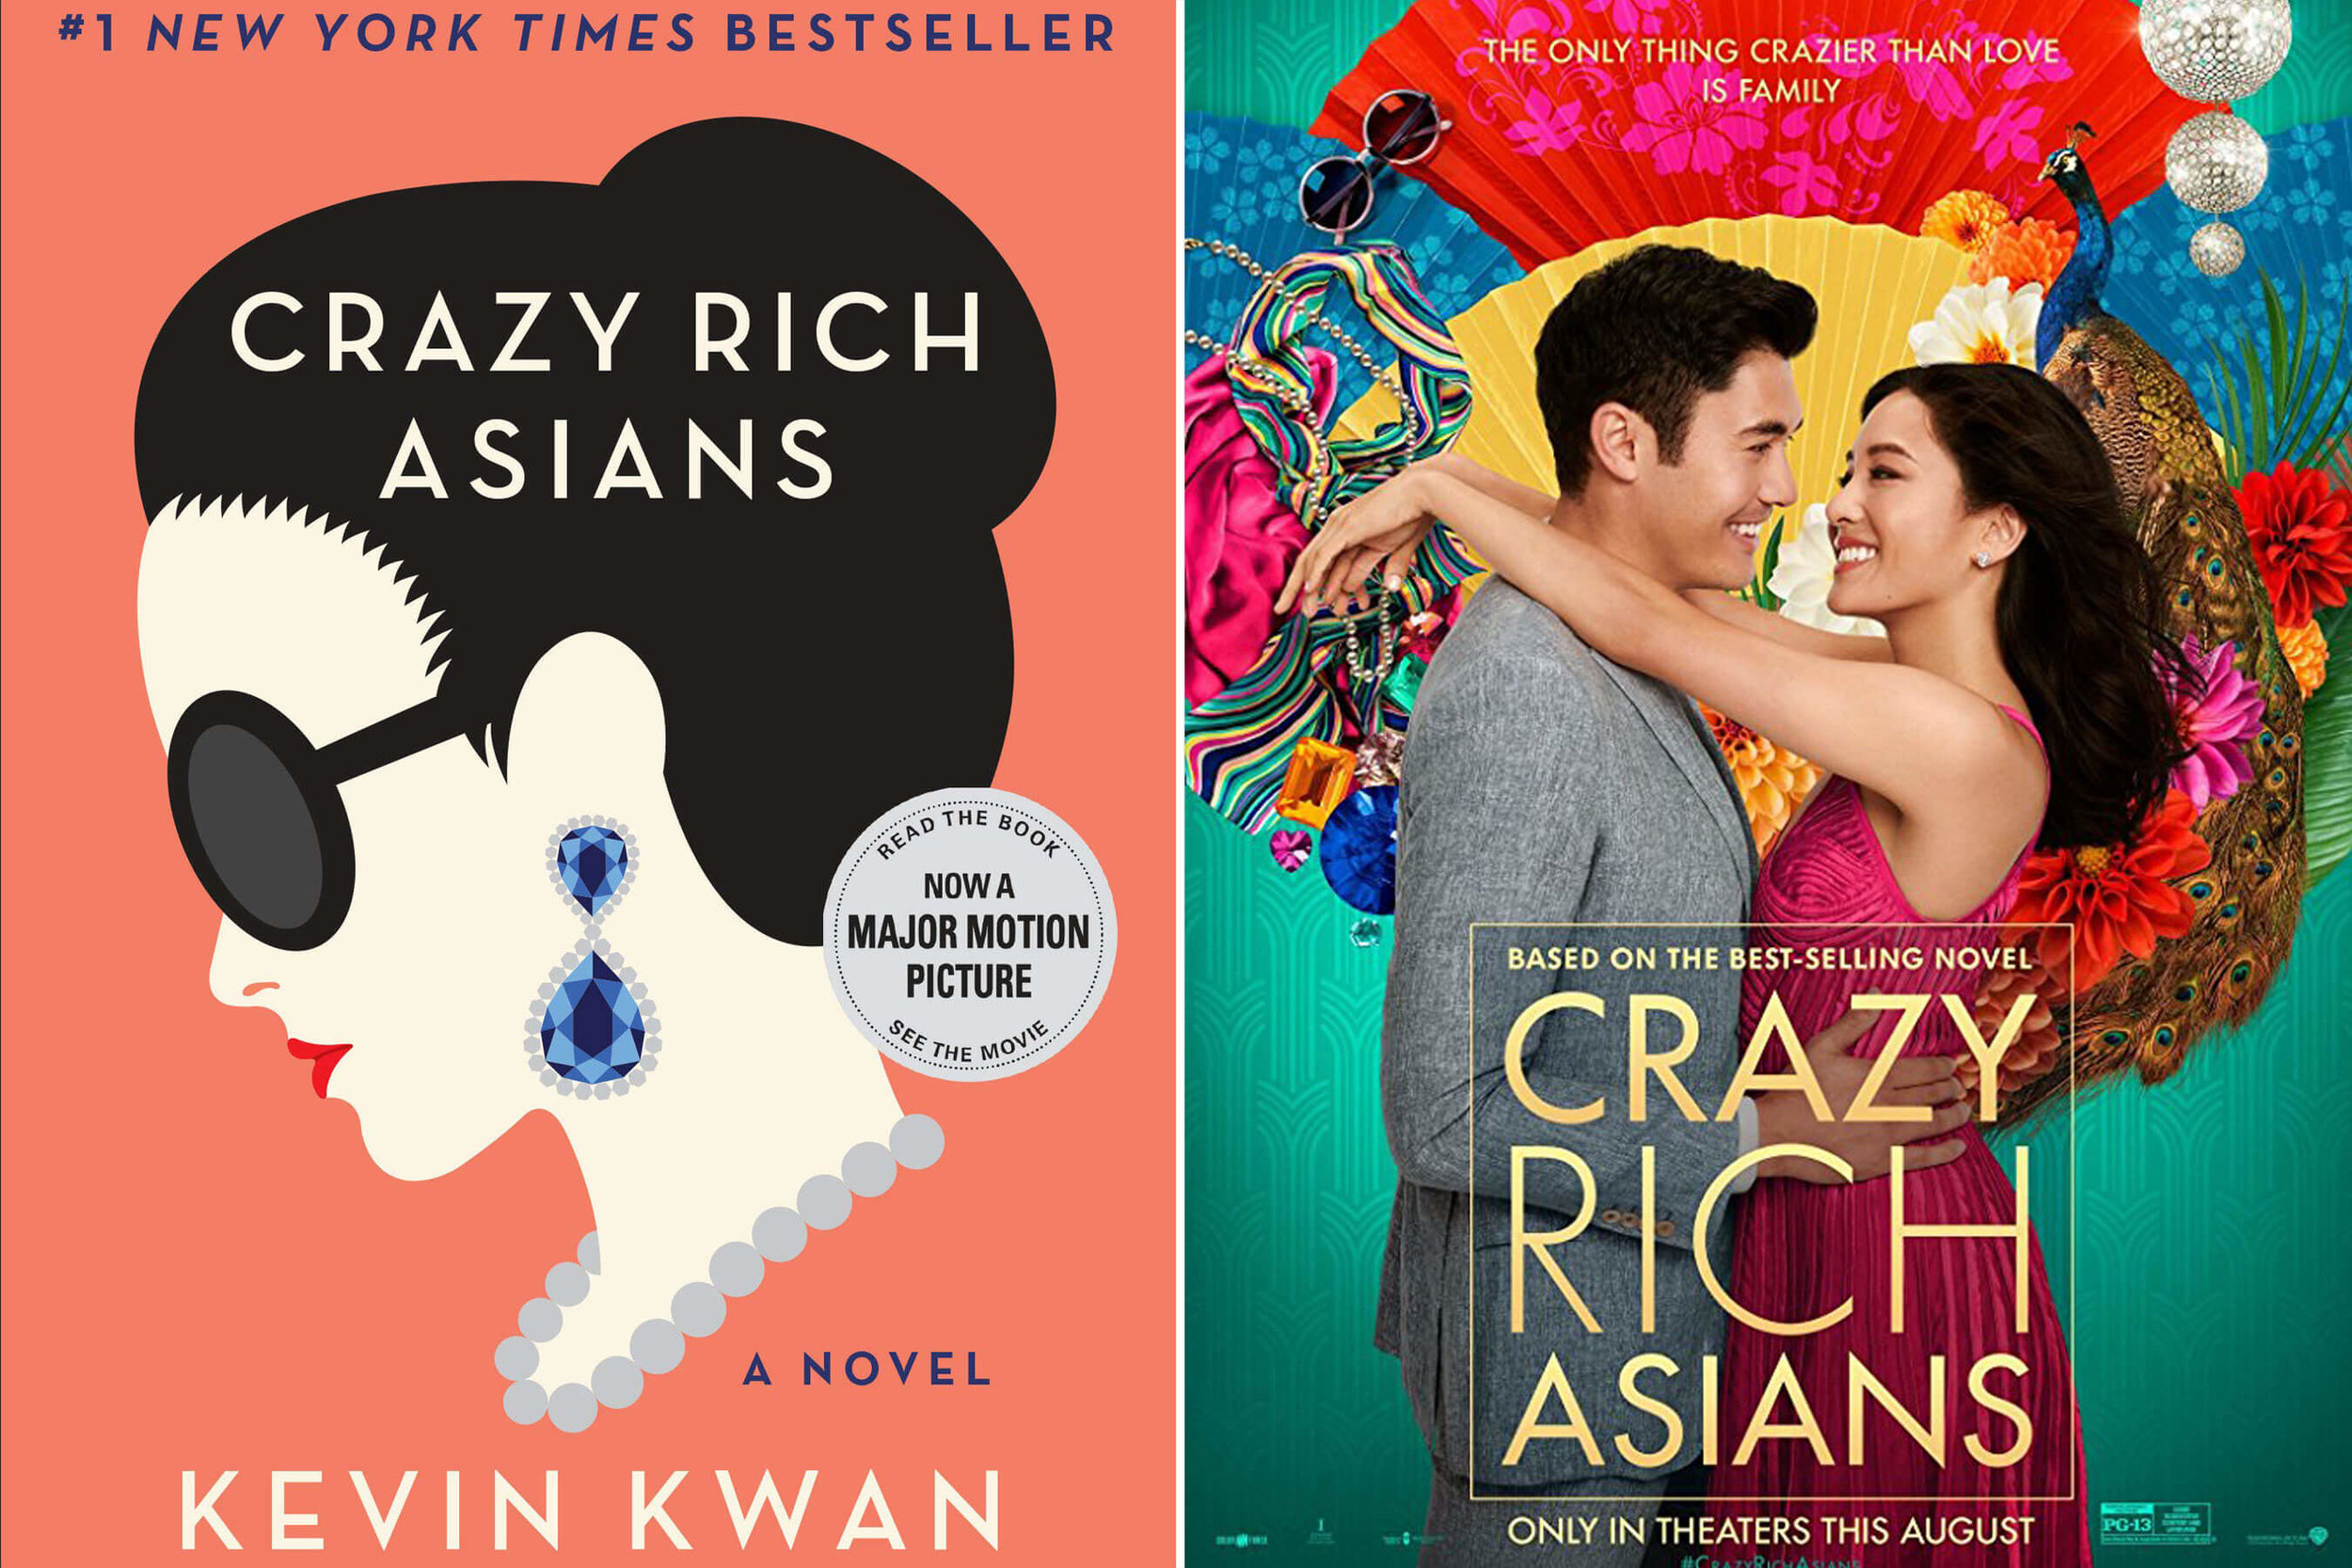 Crazy Rich Asians Source:  EW.com